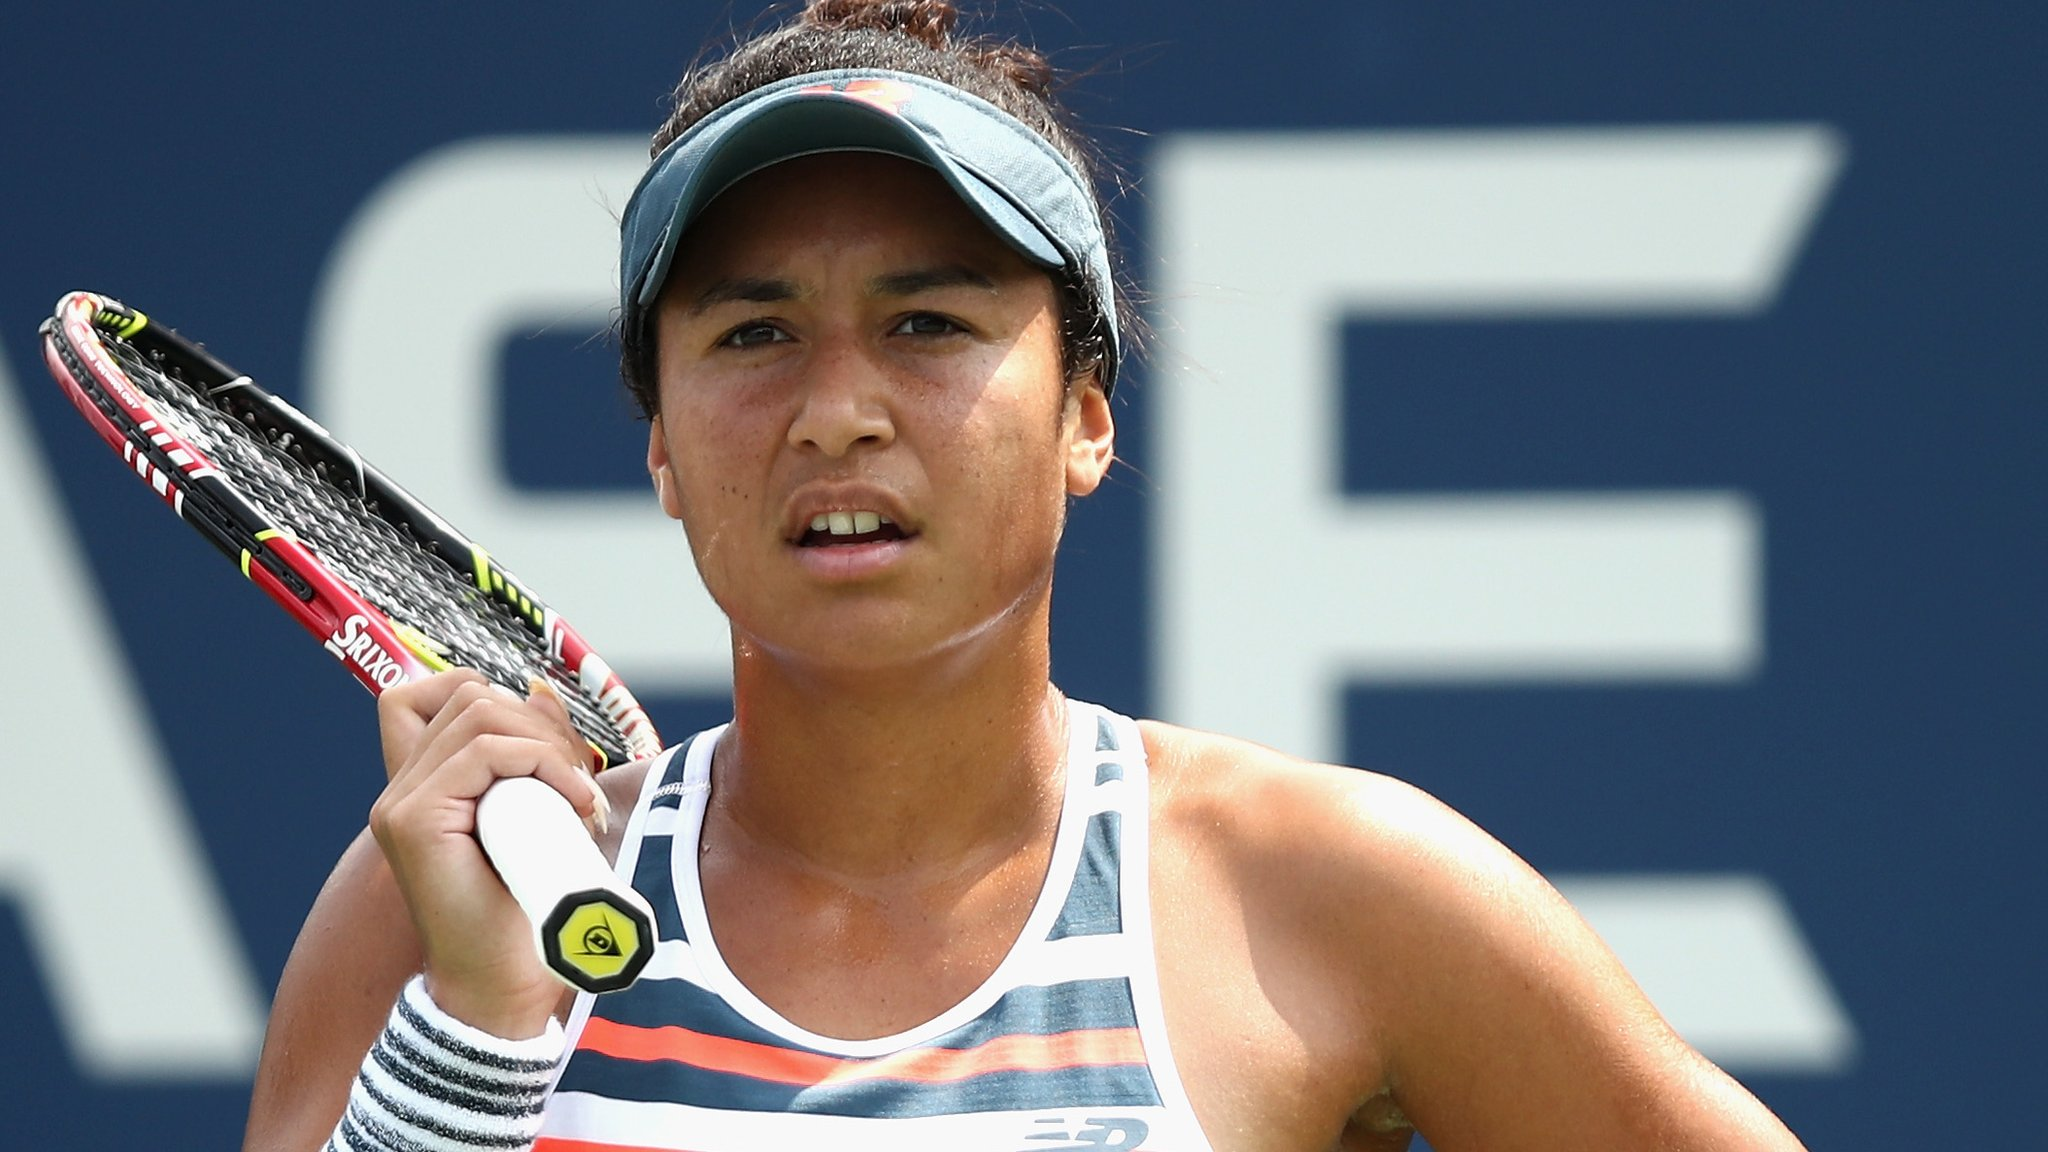 Heather Watson beaten by Pauline Parmentier in Quebec semi-finals